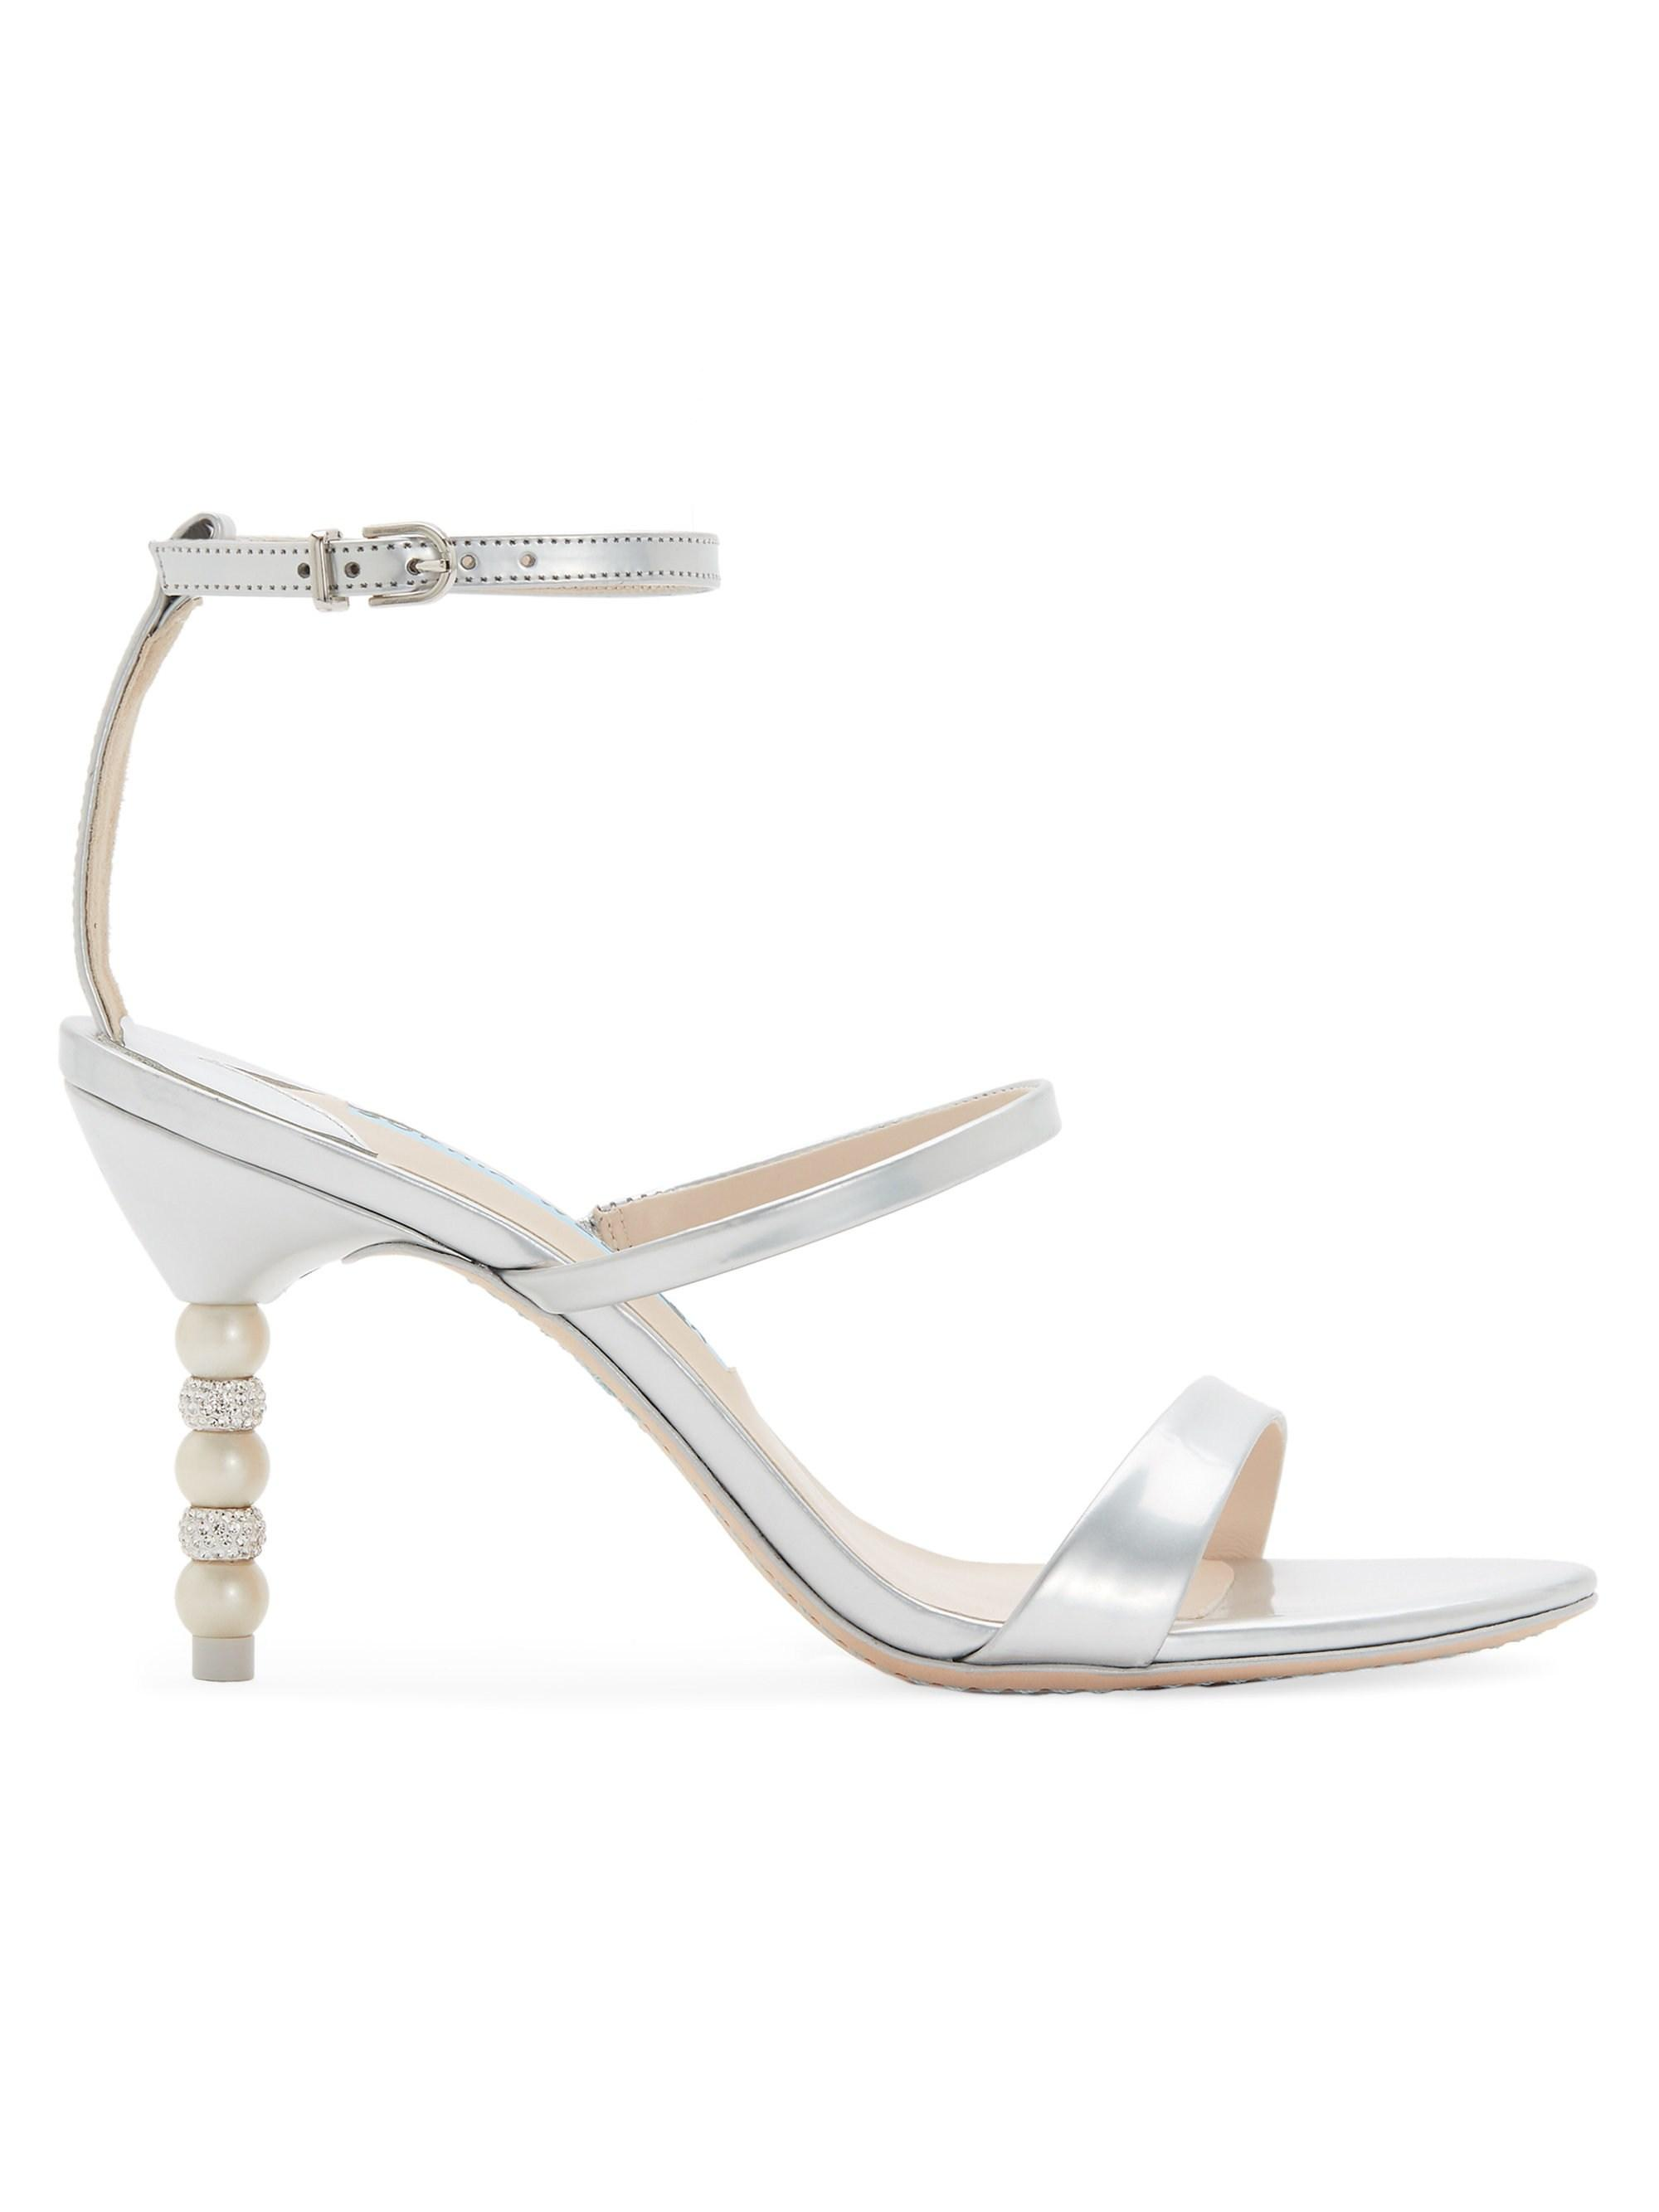 a6f49bc3114 Lyst - Sophia Webster Rosalind Strappy Crystal & Faux-pearl Heel ...